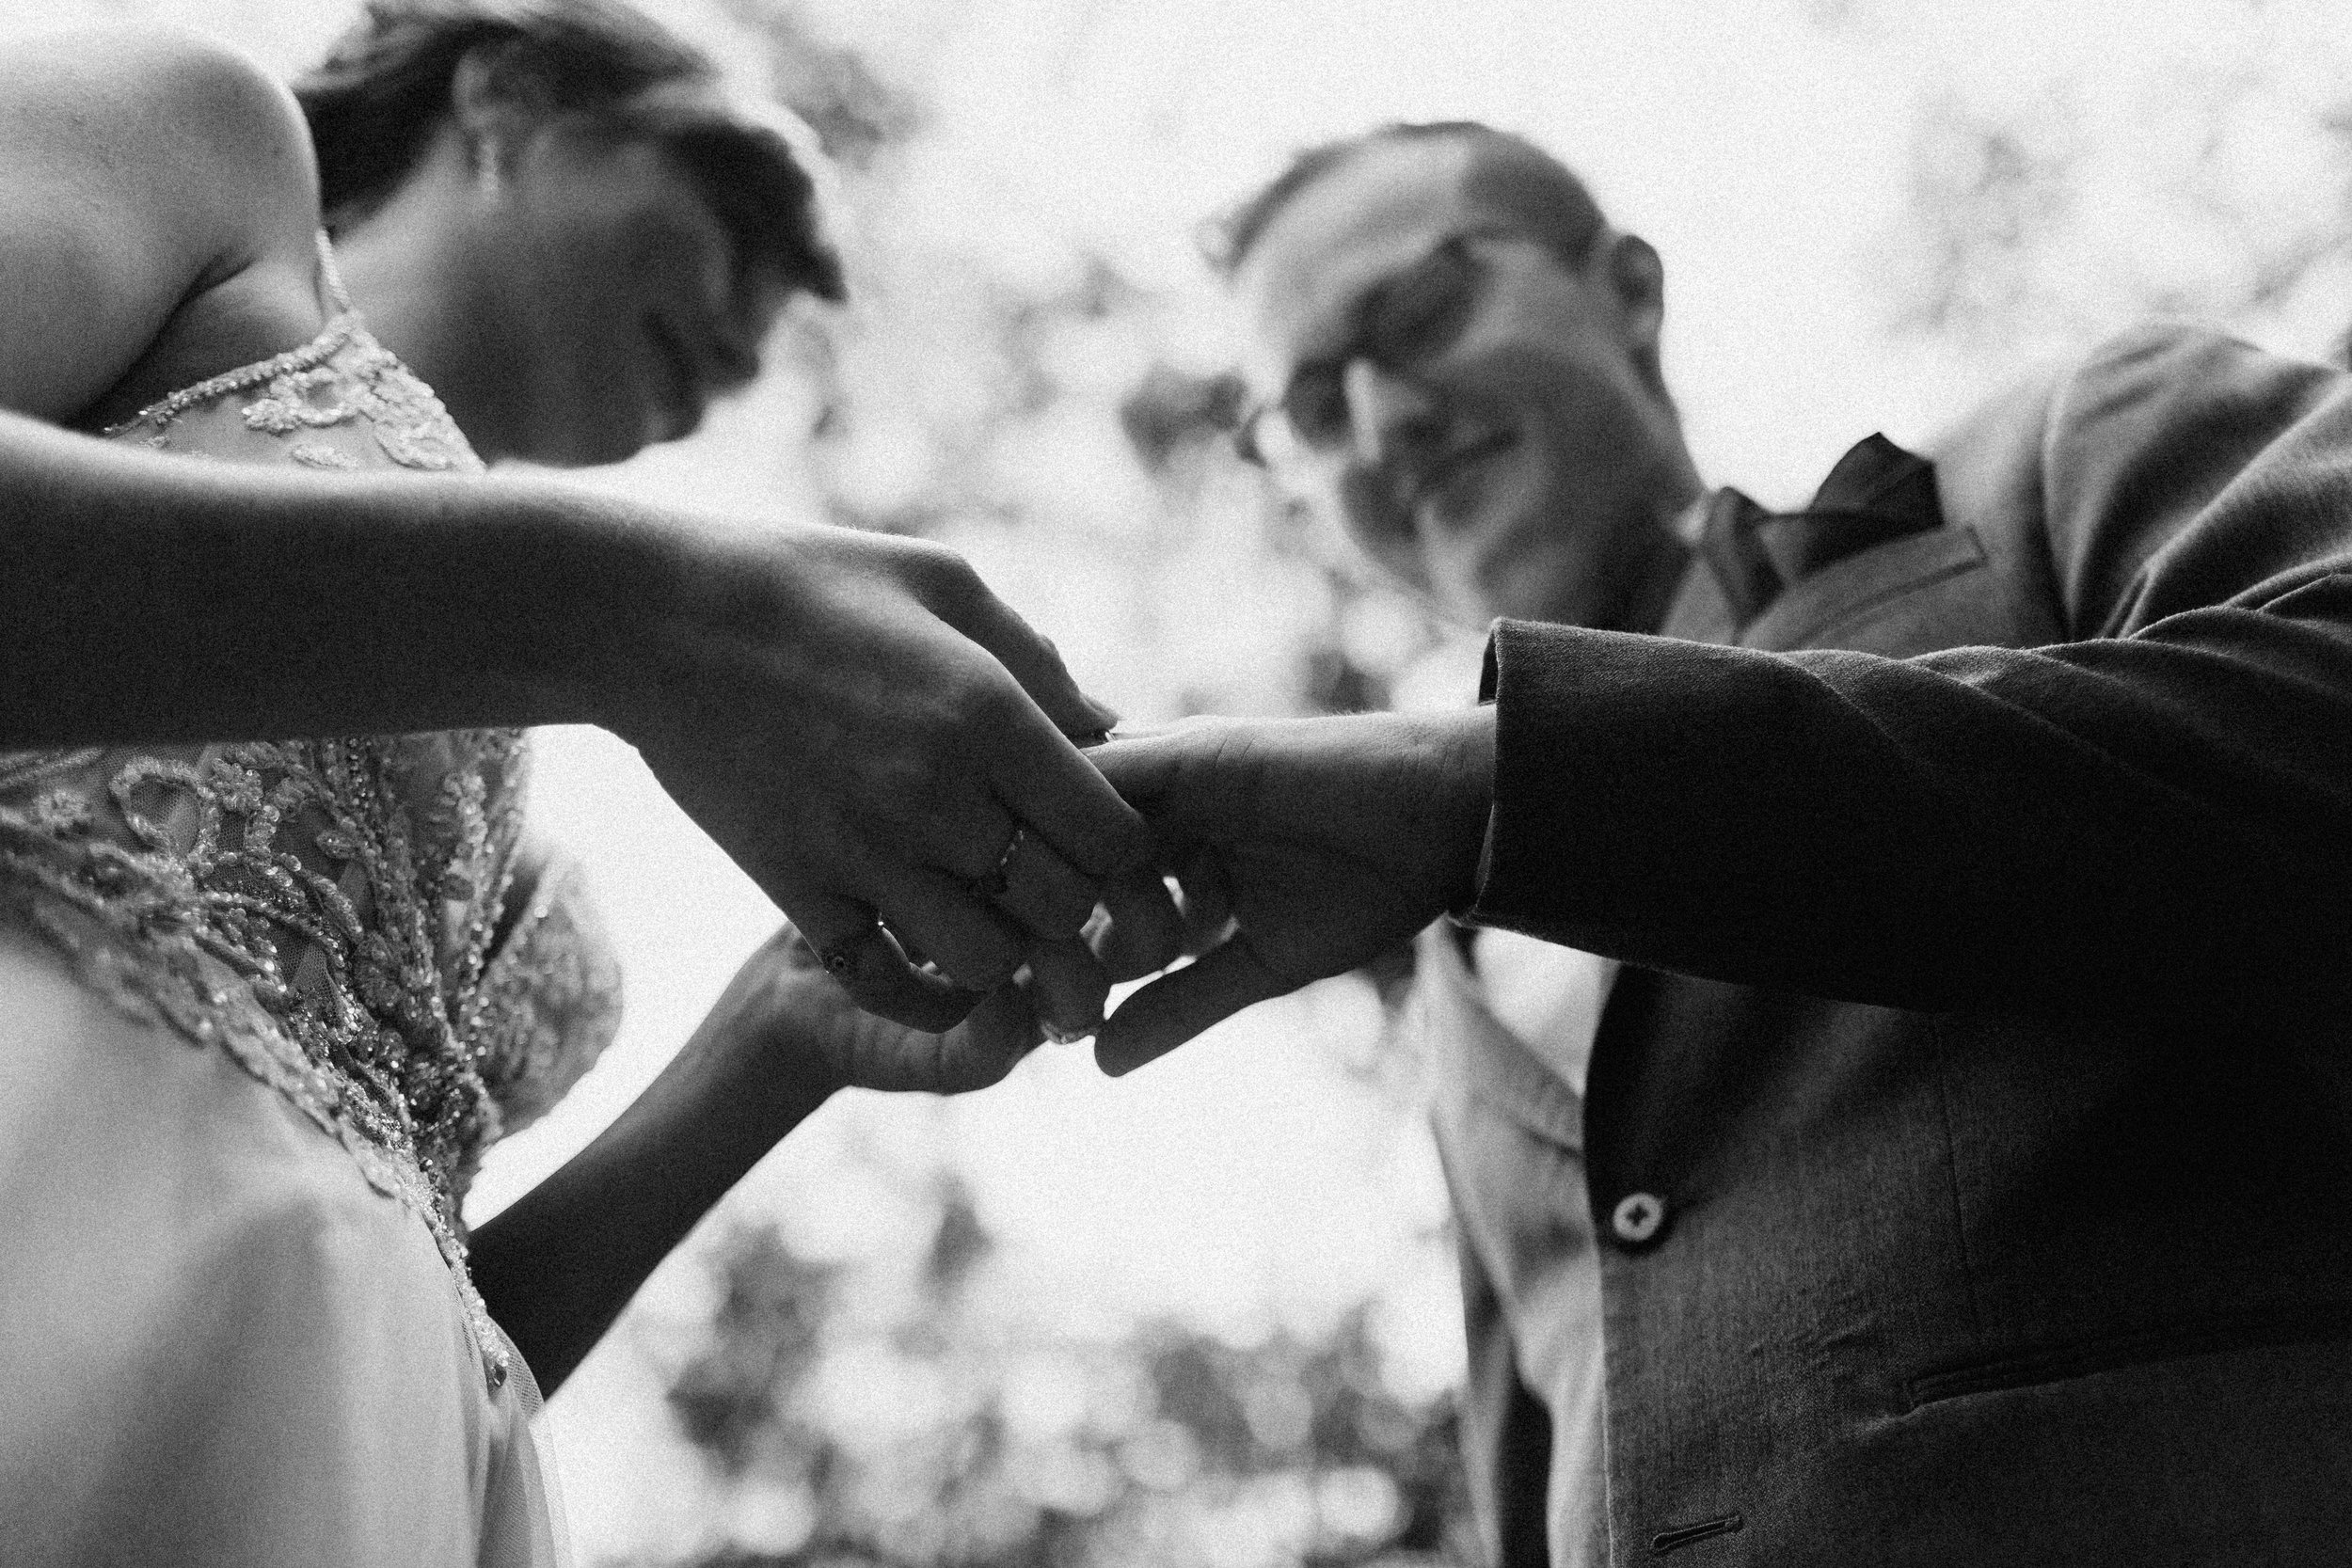 dahlonega_juliette_chapel_photojournalism_atlanta_wedding_photographers_1265.jpg